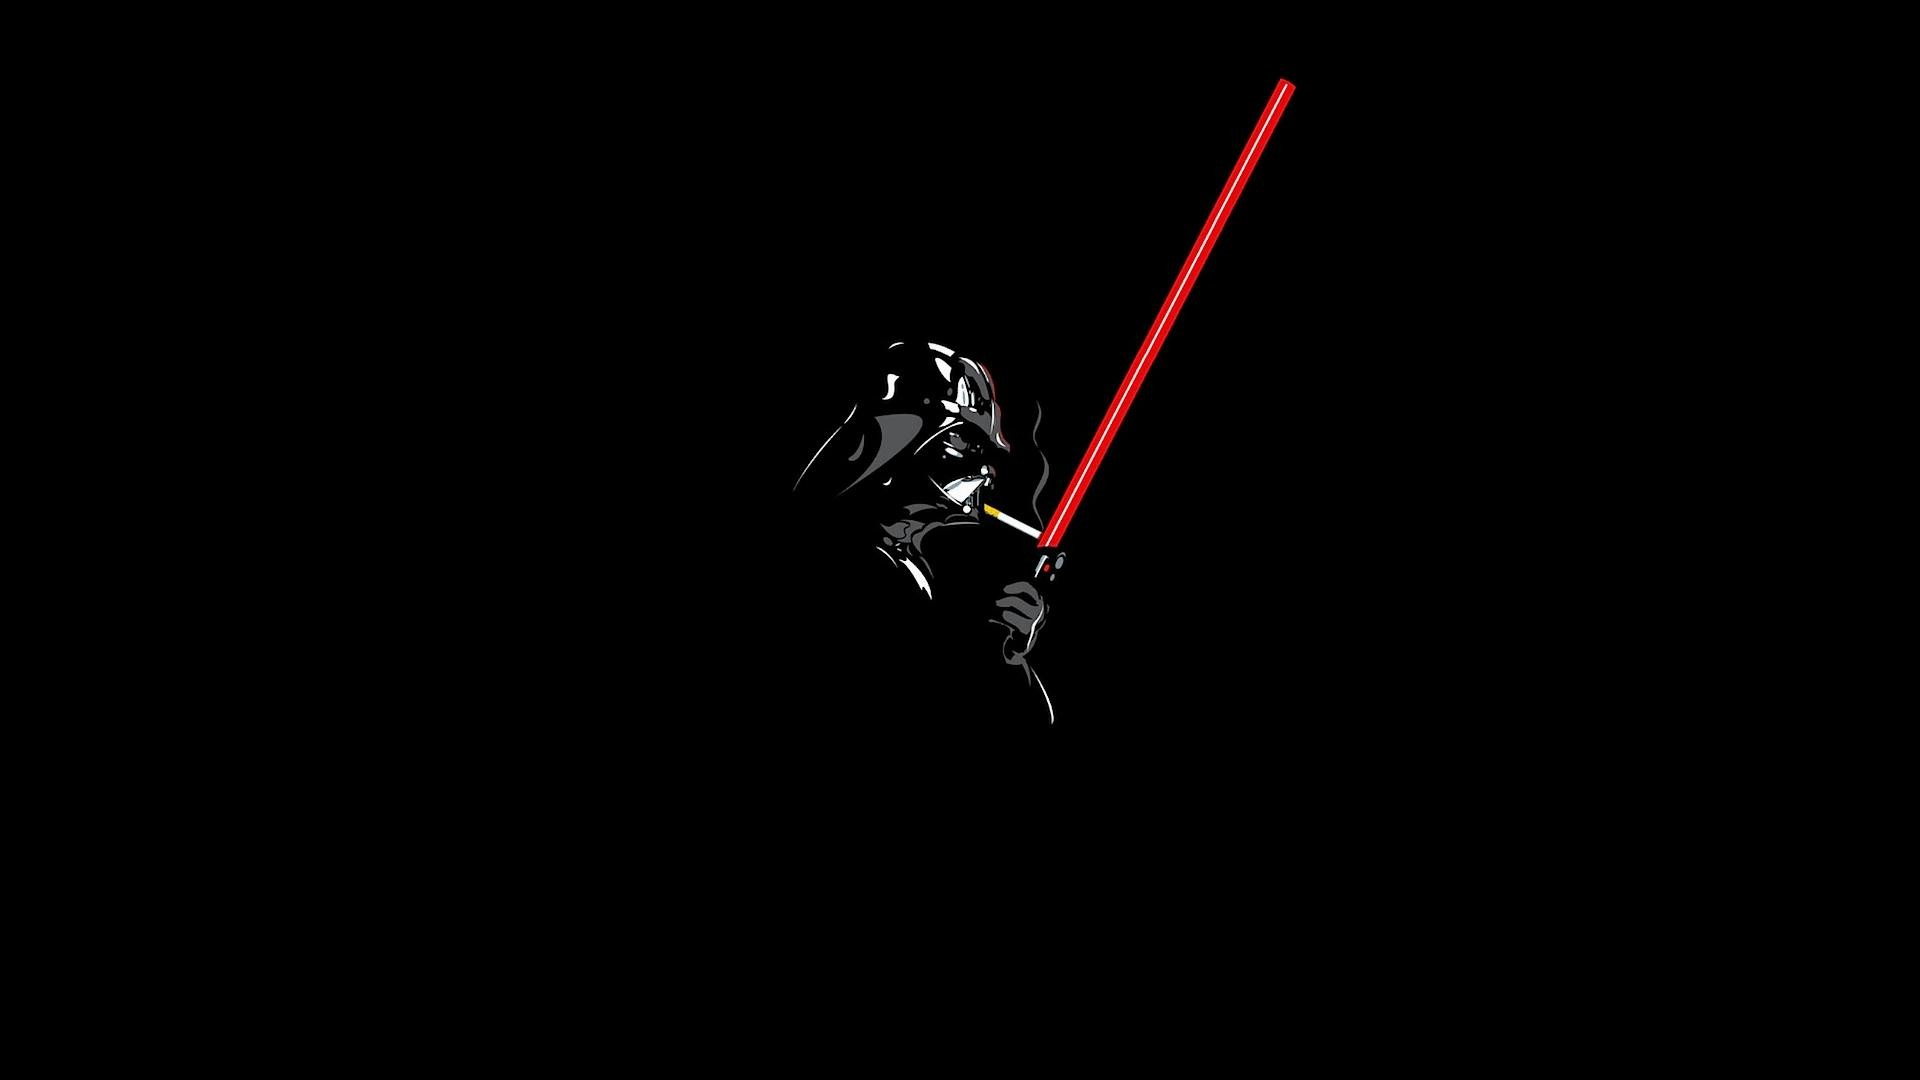 wallpaper.wiki-Epic-Star-Wars-Wallpapers-HD-For-